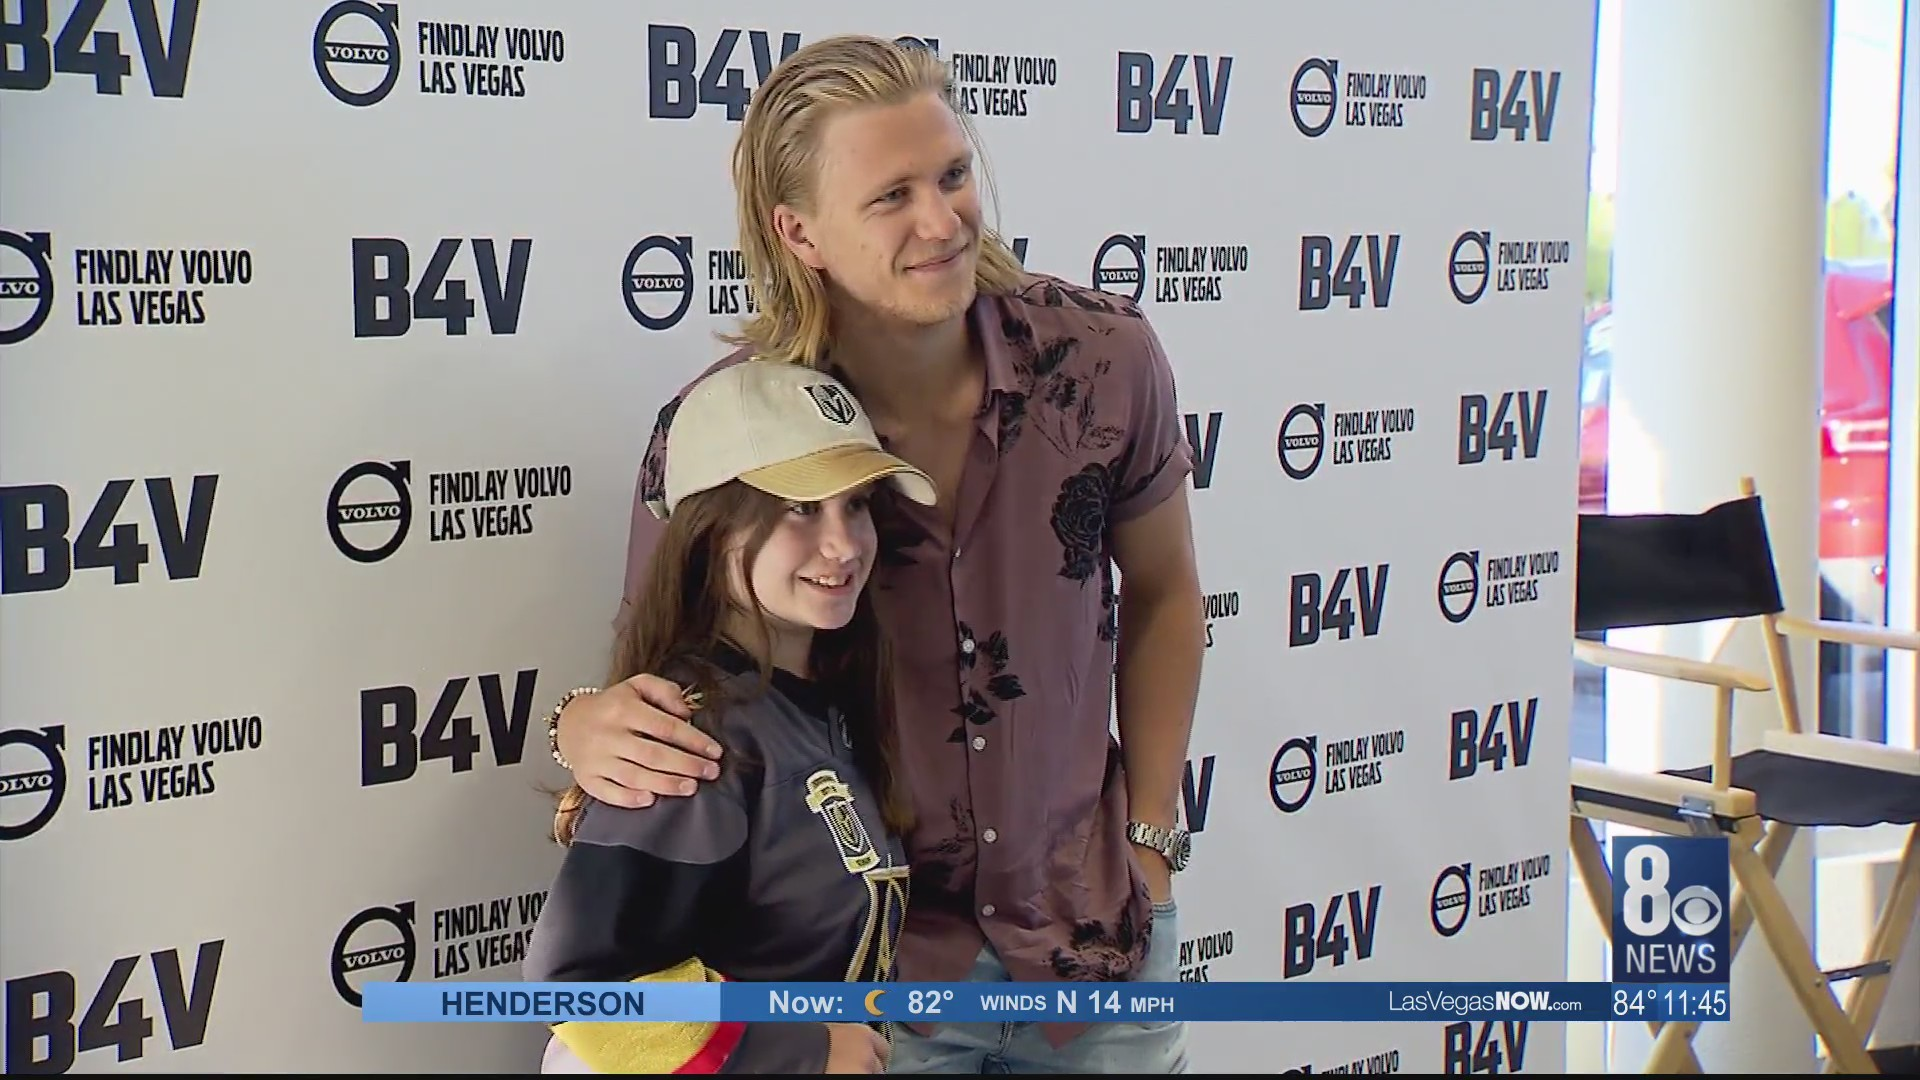 William Karlsson is The Valley's favorite Swedish import